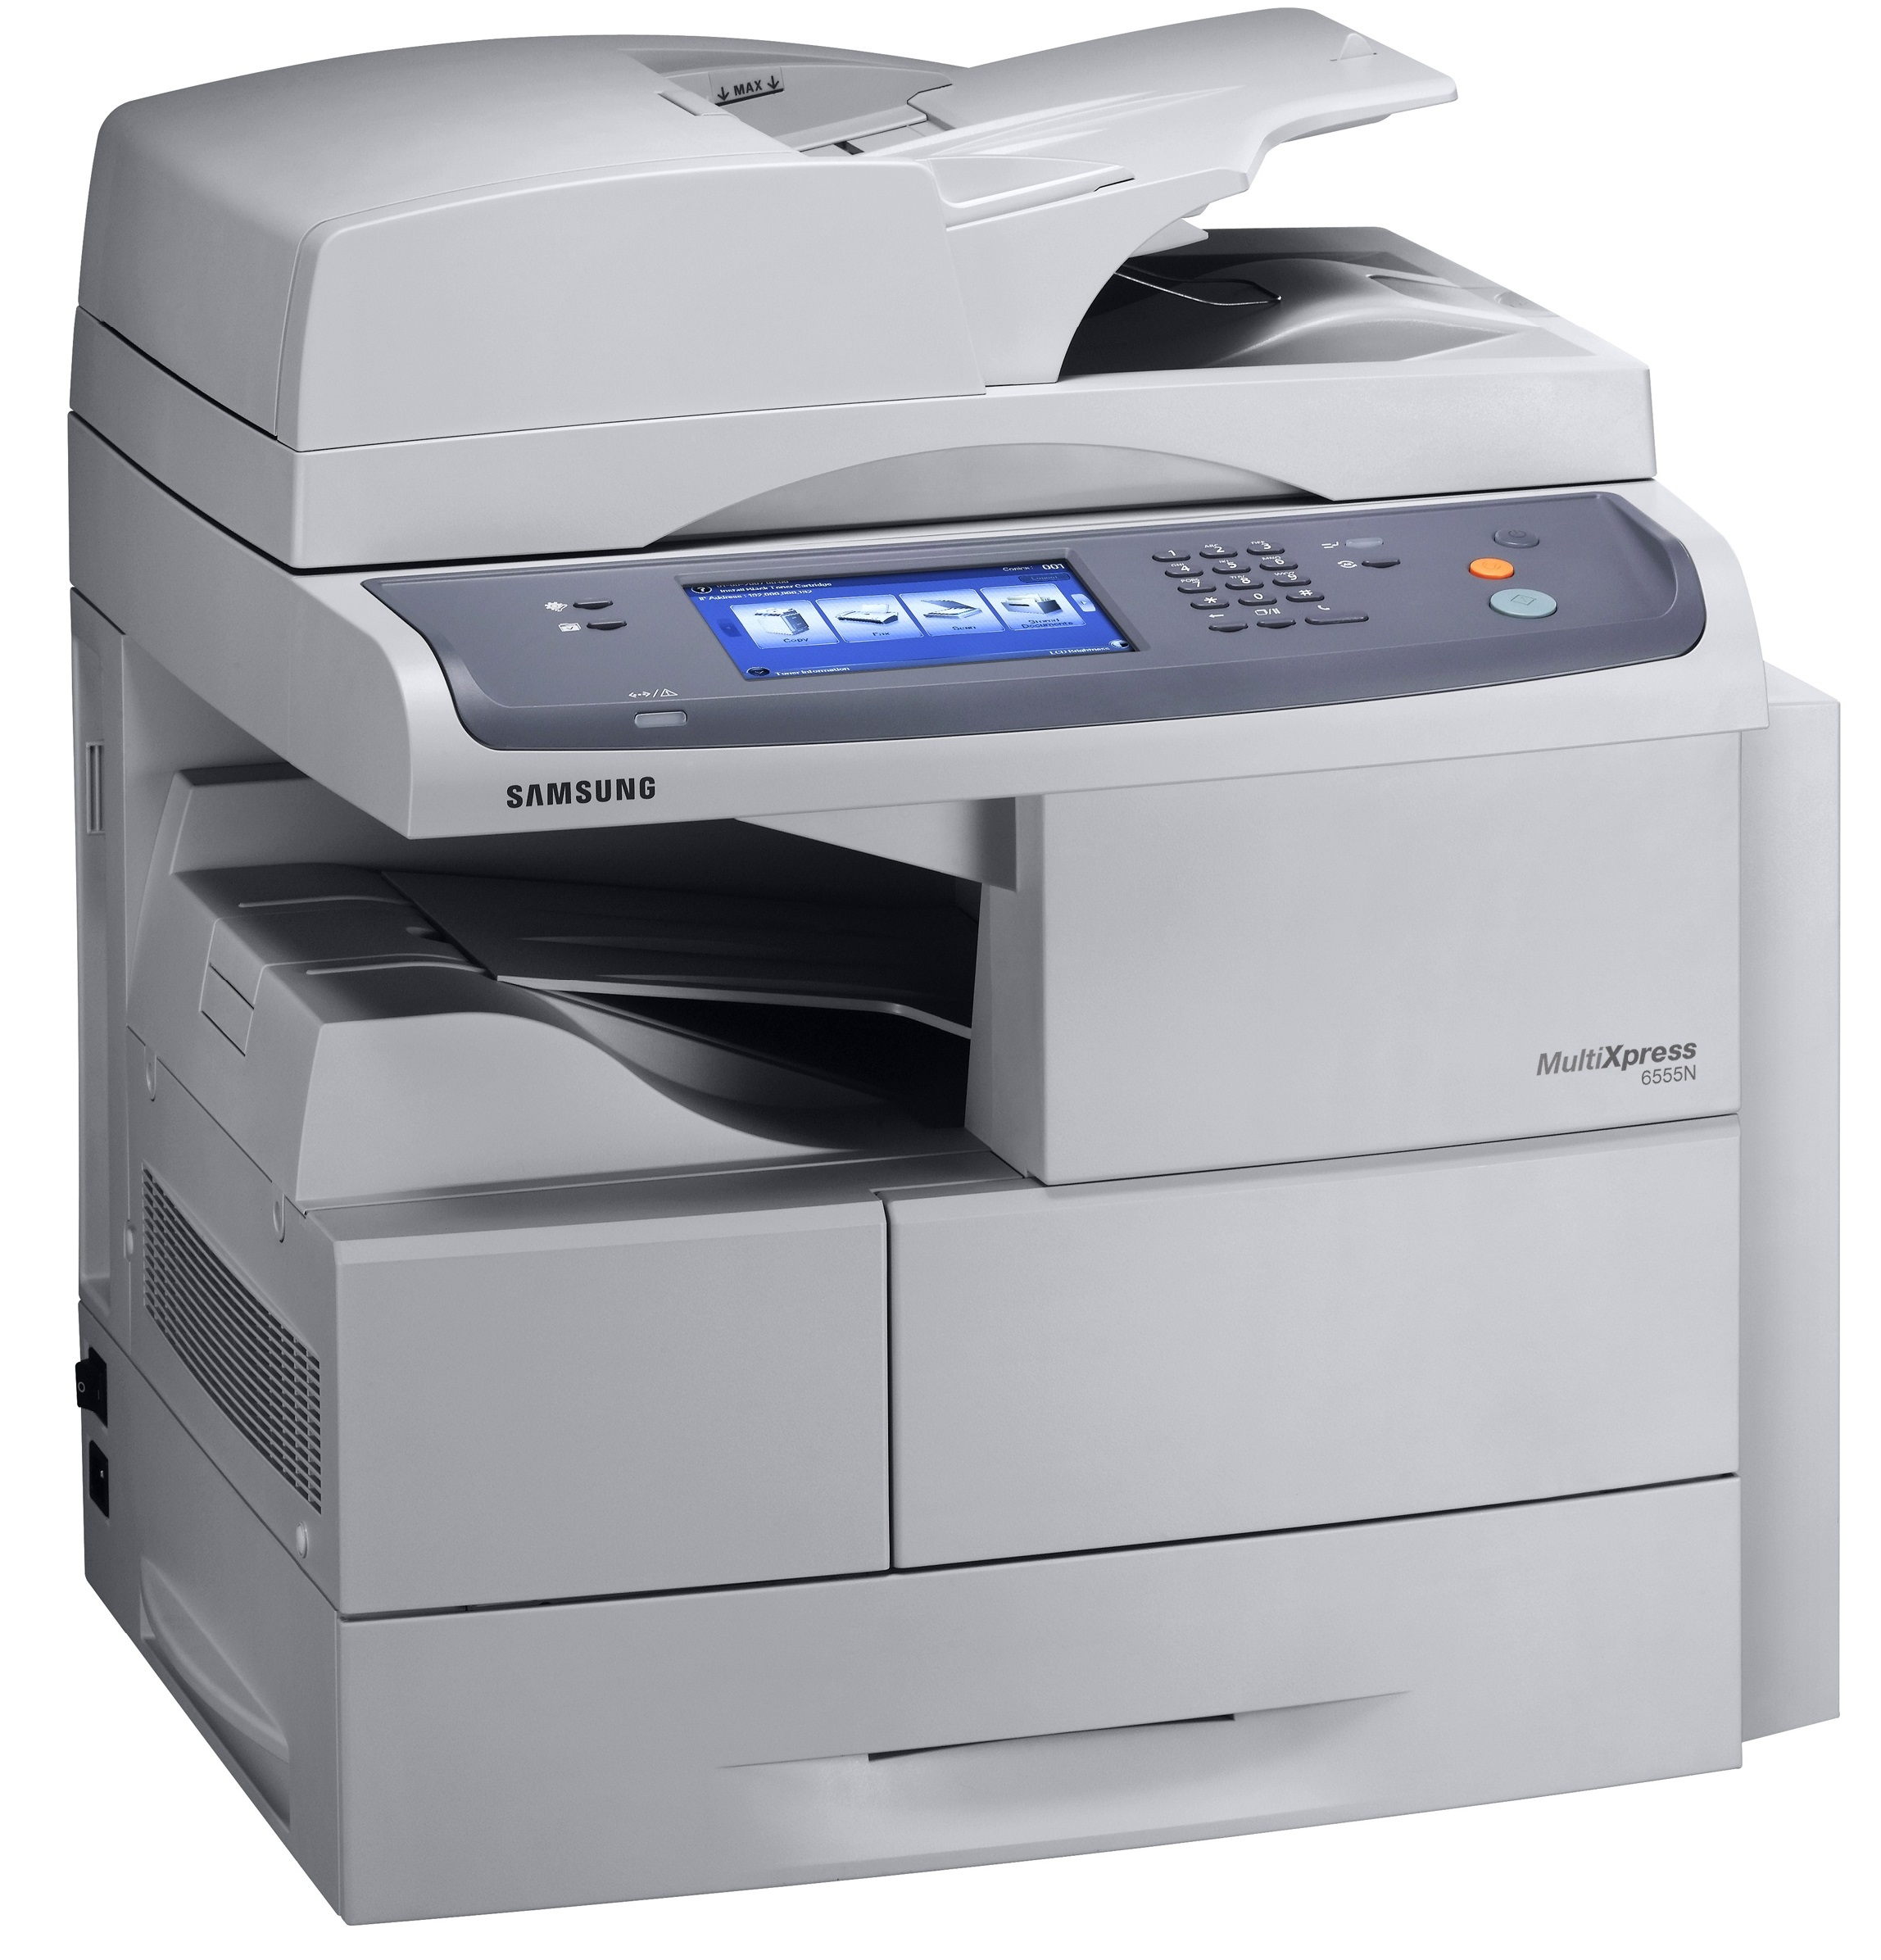 Samsung MultiXpress SCX-6555N Mono Laser MFP, Fully Refurbished (SCX-6555N)